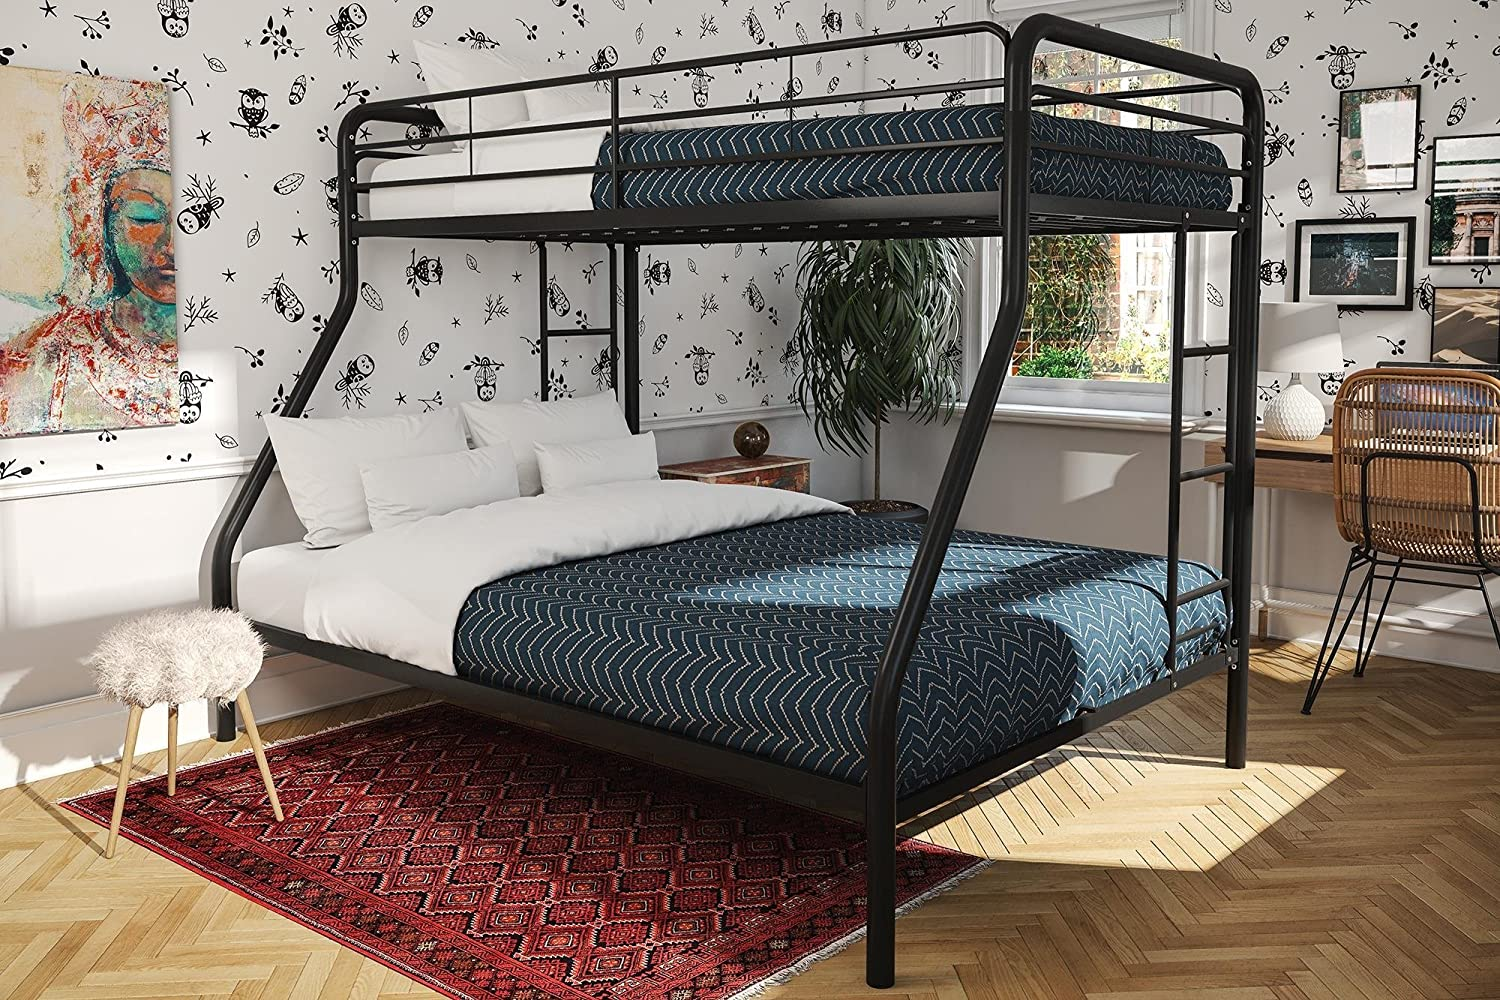 Bunk Beds for Kids Twin Over Full Boys Metal Ladder Bedroom Furniture Dorm  College Home Children Space Saver Sleeper